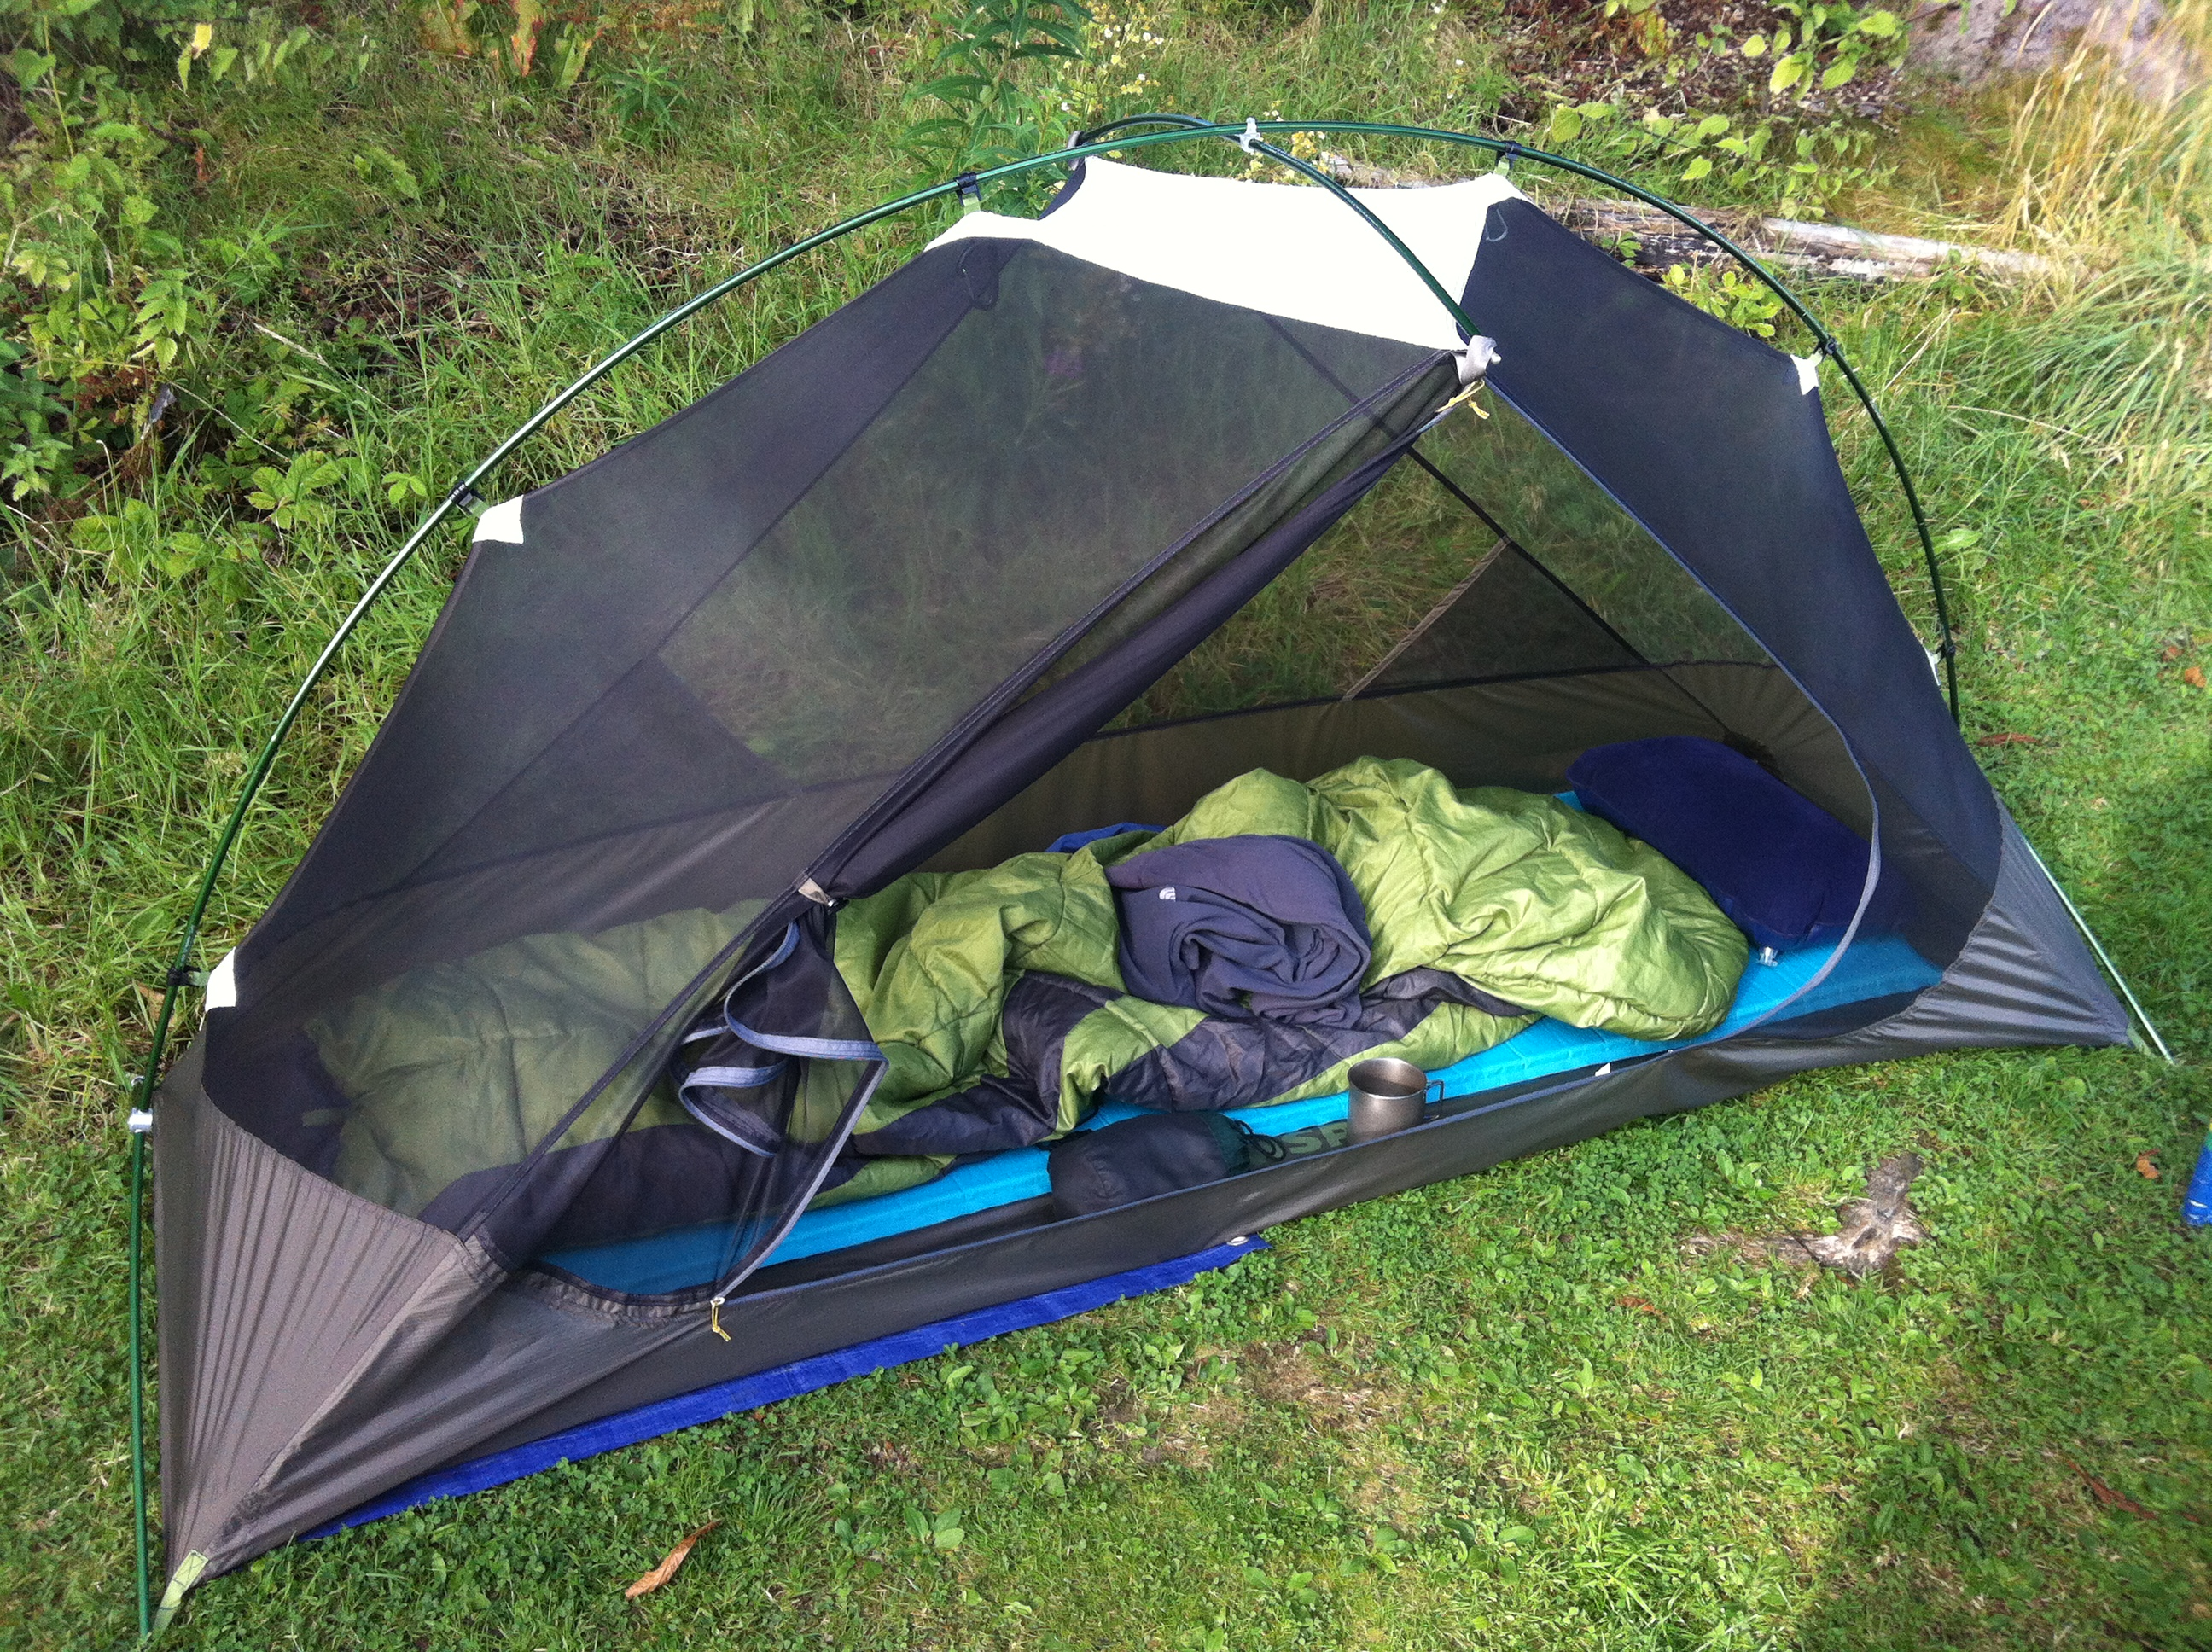 MSR Hubba tent inside & MSR Hubba Backpacking Tent tent review and modifications